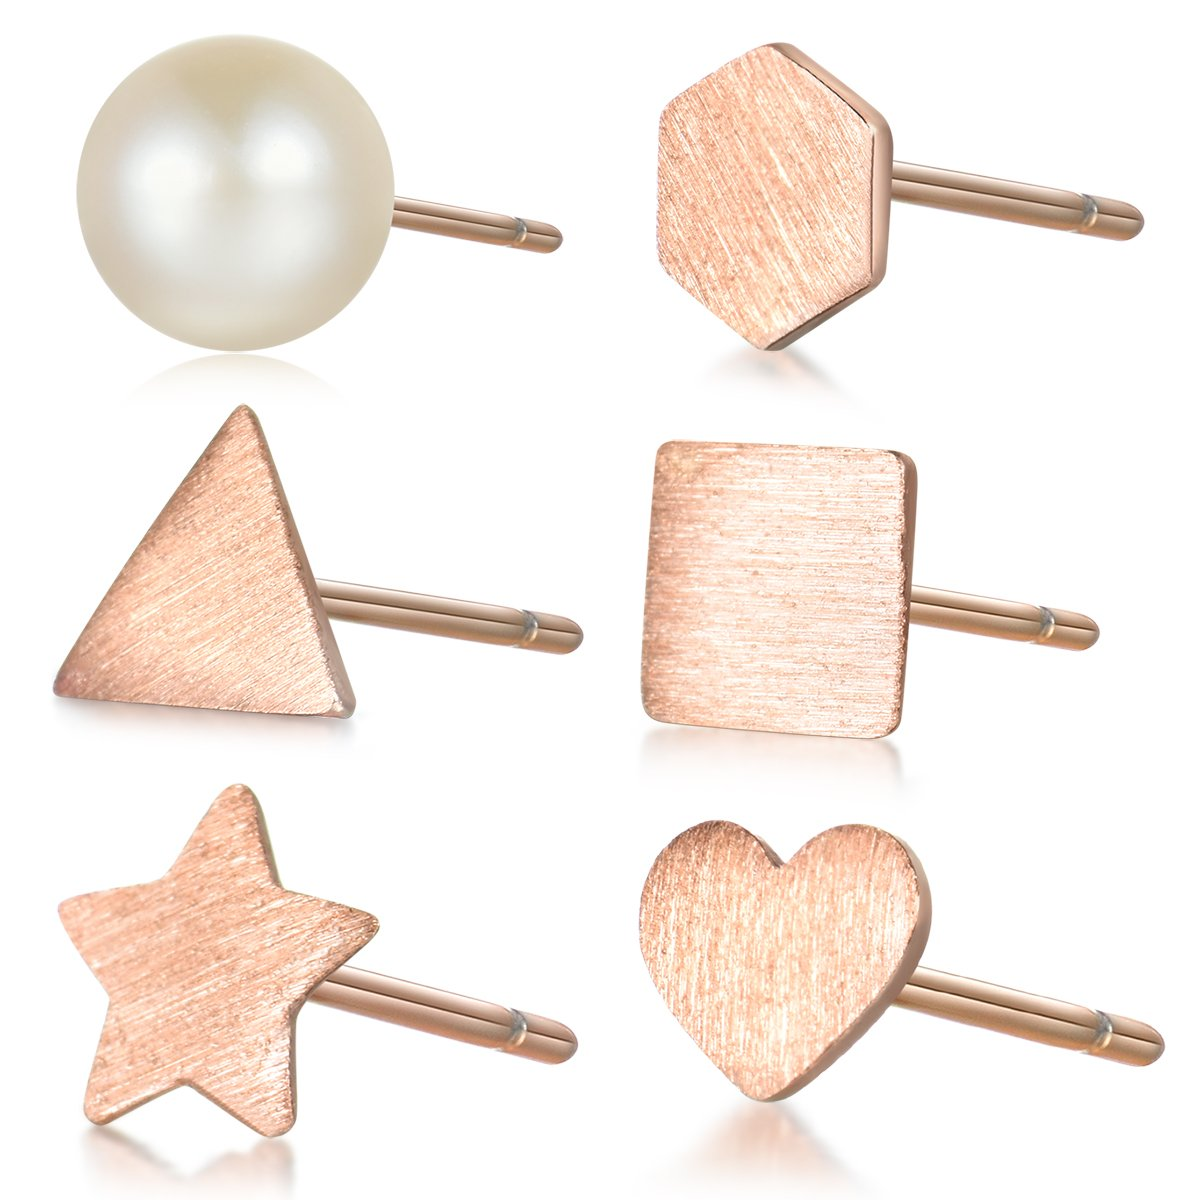 Hypoallergenic 925 Sterling Silver Tiny Stud Earrings Set for Cartilage Rose Gold Plated Women Men 6 Pcs